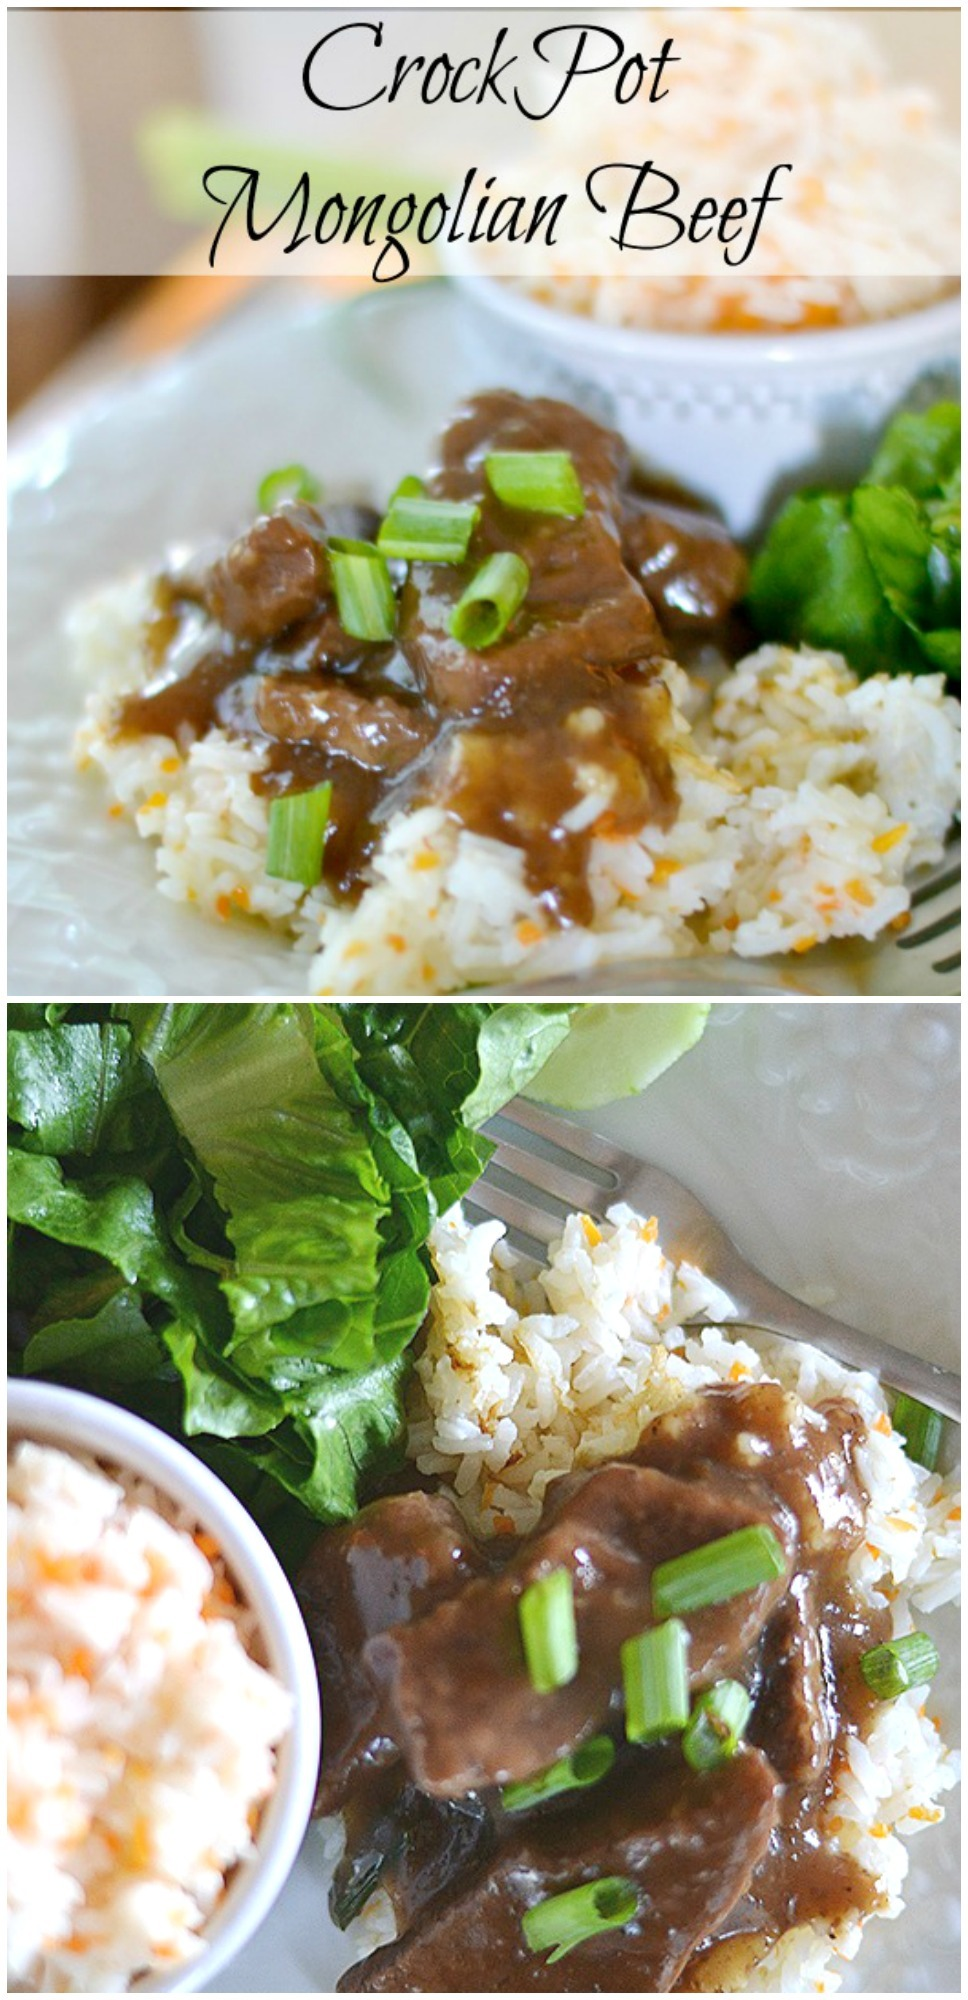 Easy and delicious Crockpot Mongolian Beef. Another one of our favorite family meals. YUM!